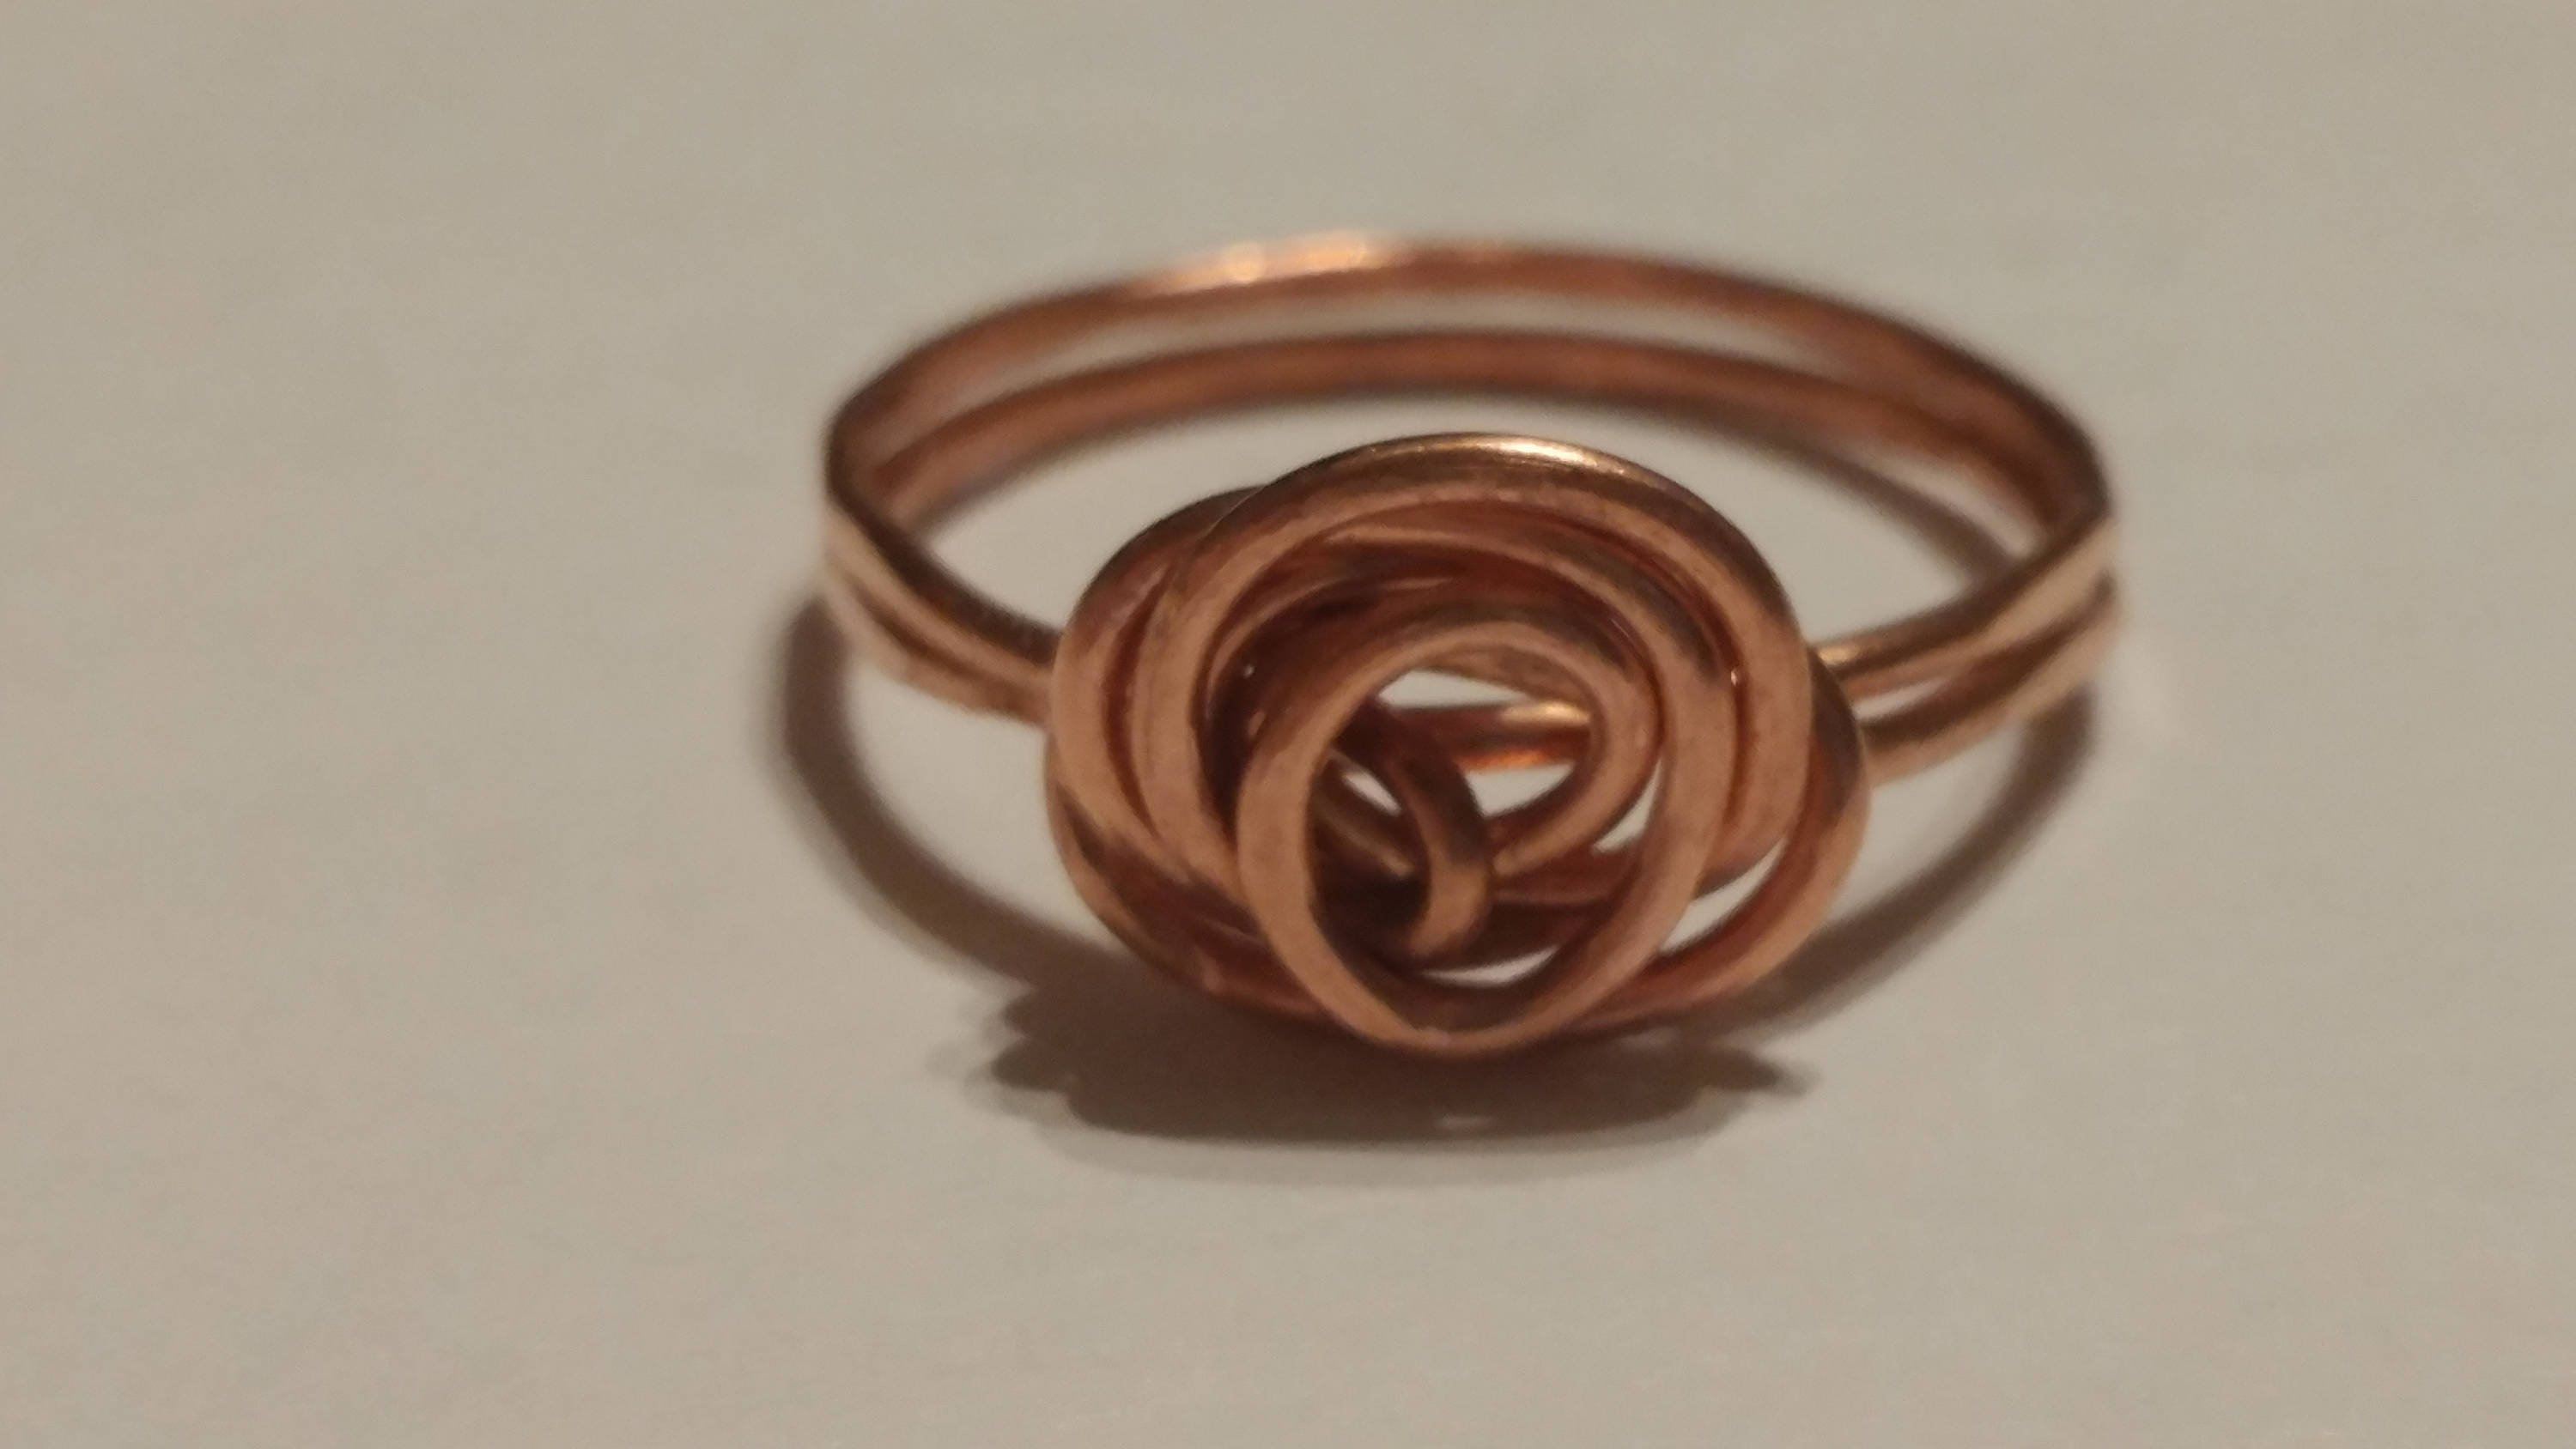 Simple Copper Rings Spiral Rings size 8.5 rings Wire Rings | Etsy